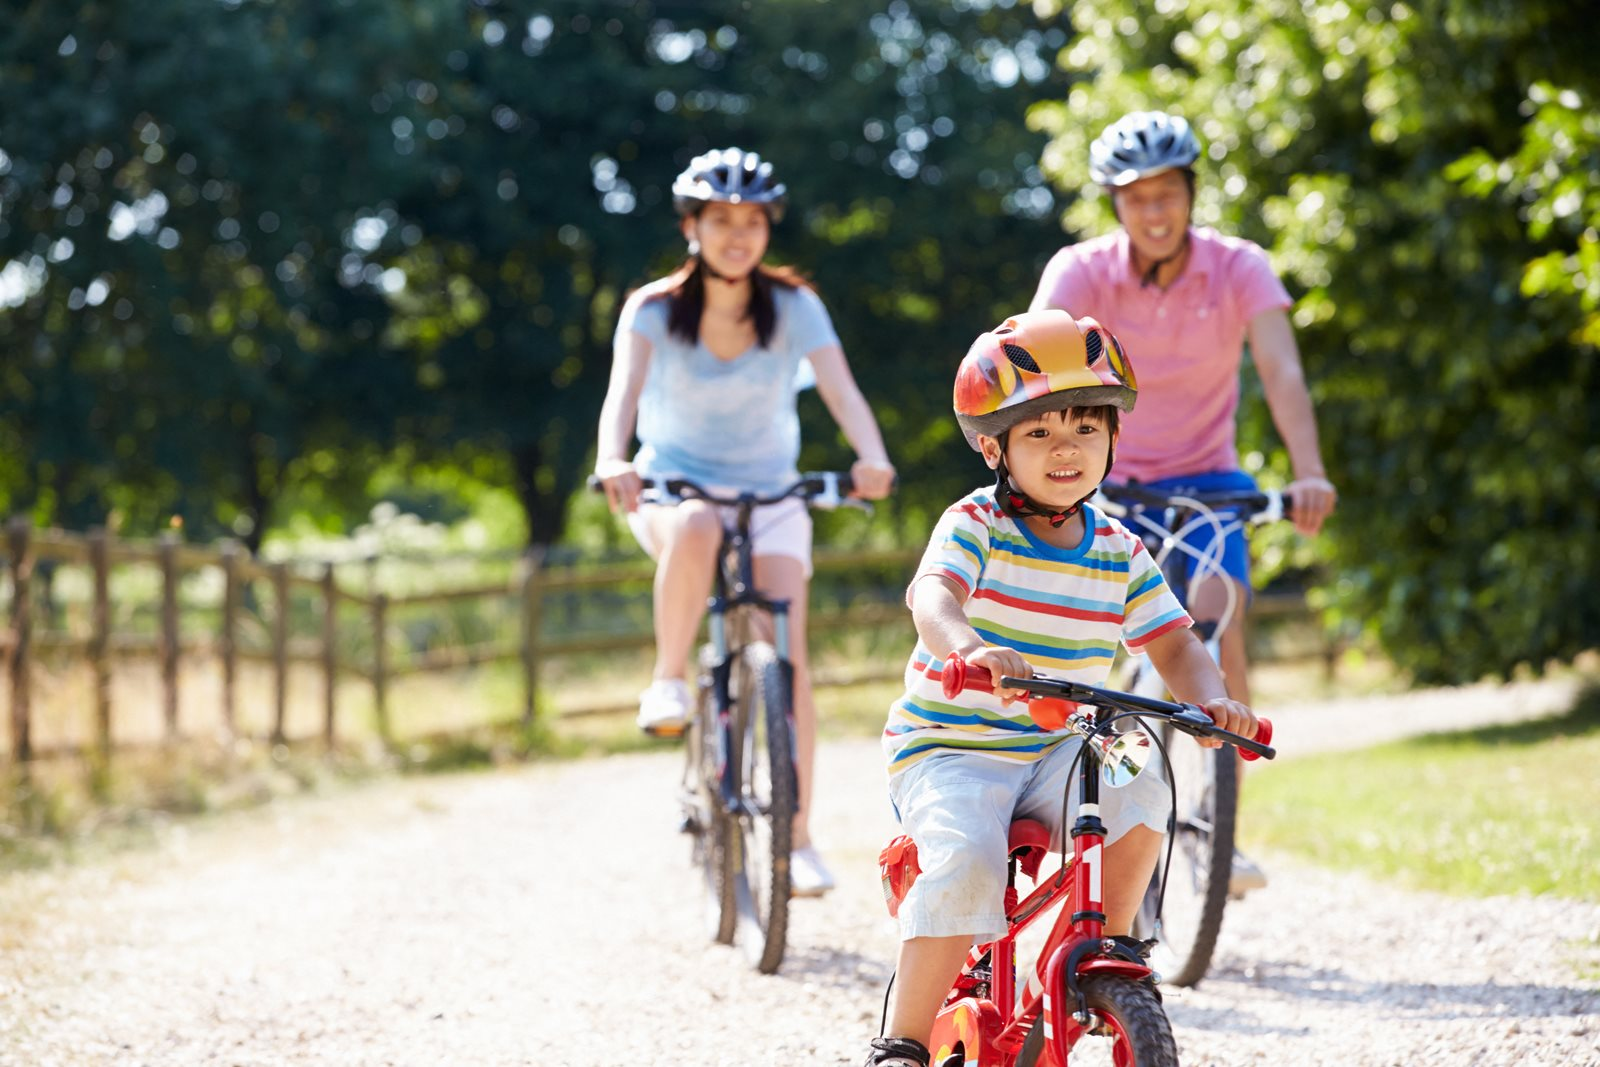 Abundant Bike Trails in Tri Valley Area at The Kensington, Apartments in Pleasanton, California